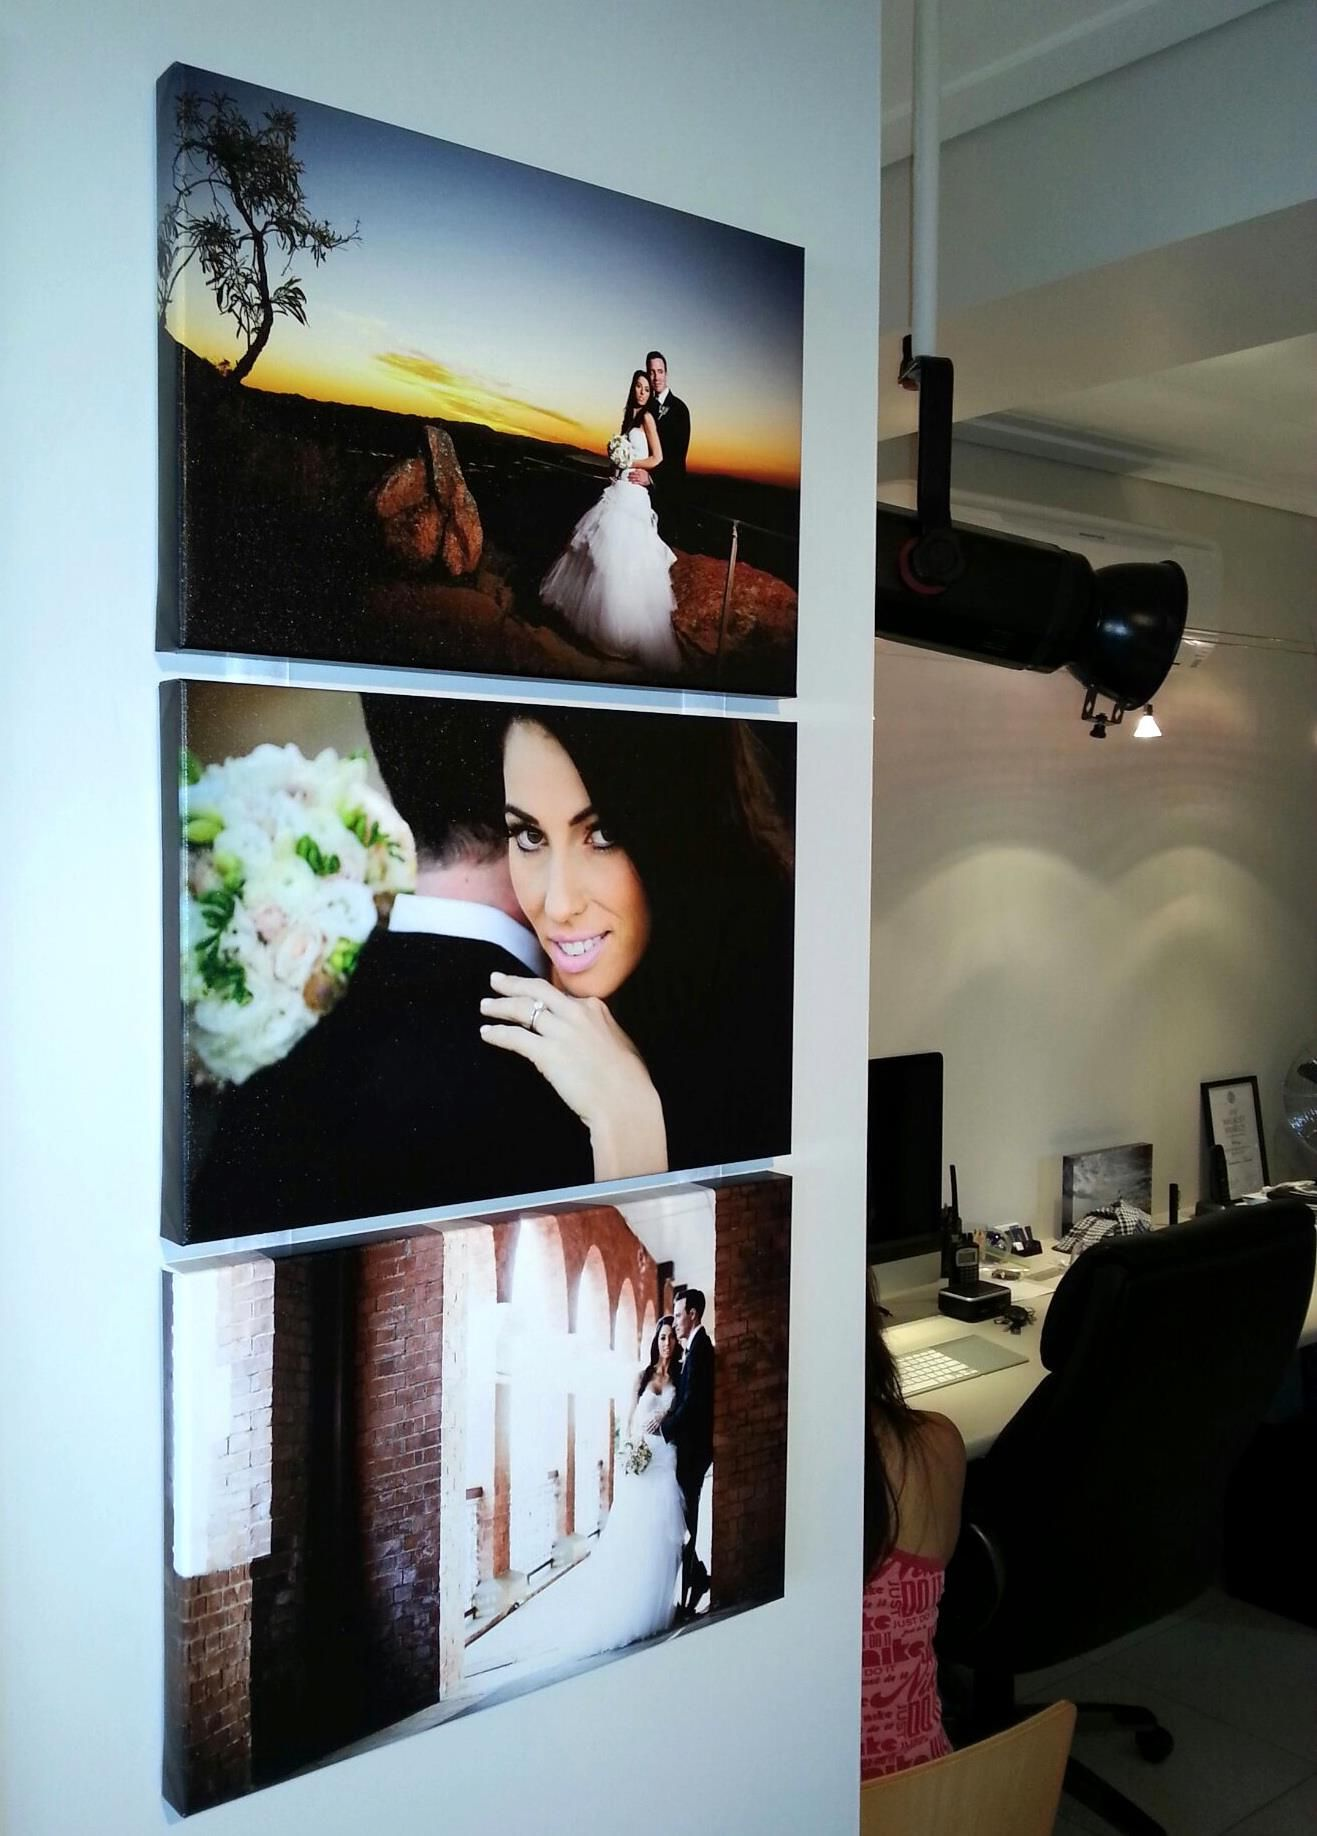 I like the big blown up picture.  I can't wait to see our wedding pictures.  I will have one of you blown up and hang it somewhere I look a lot.